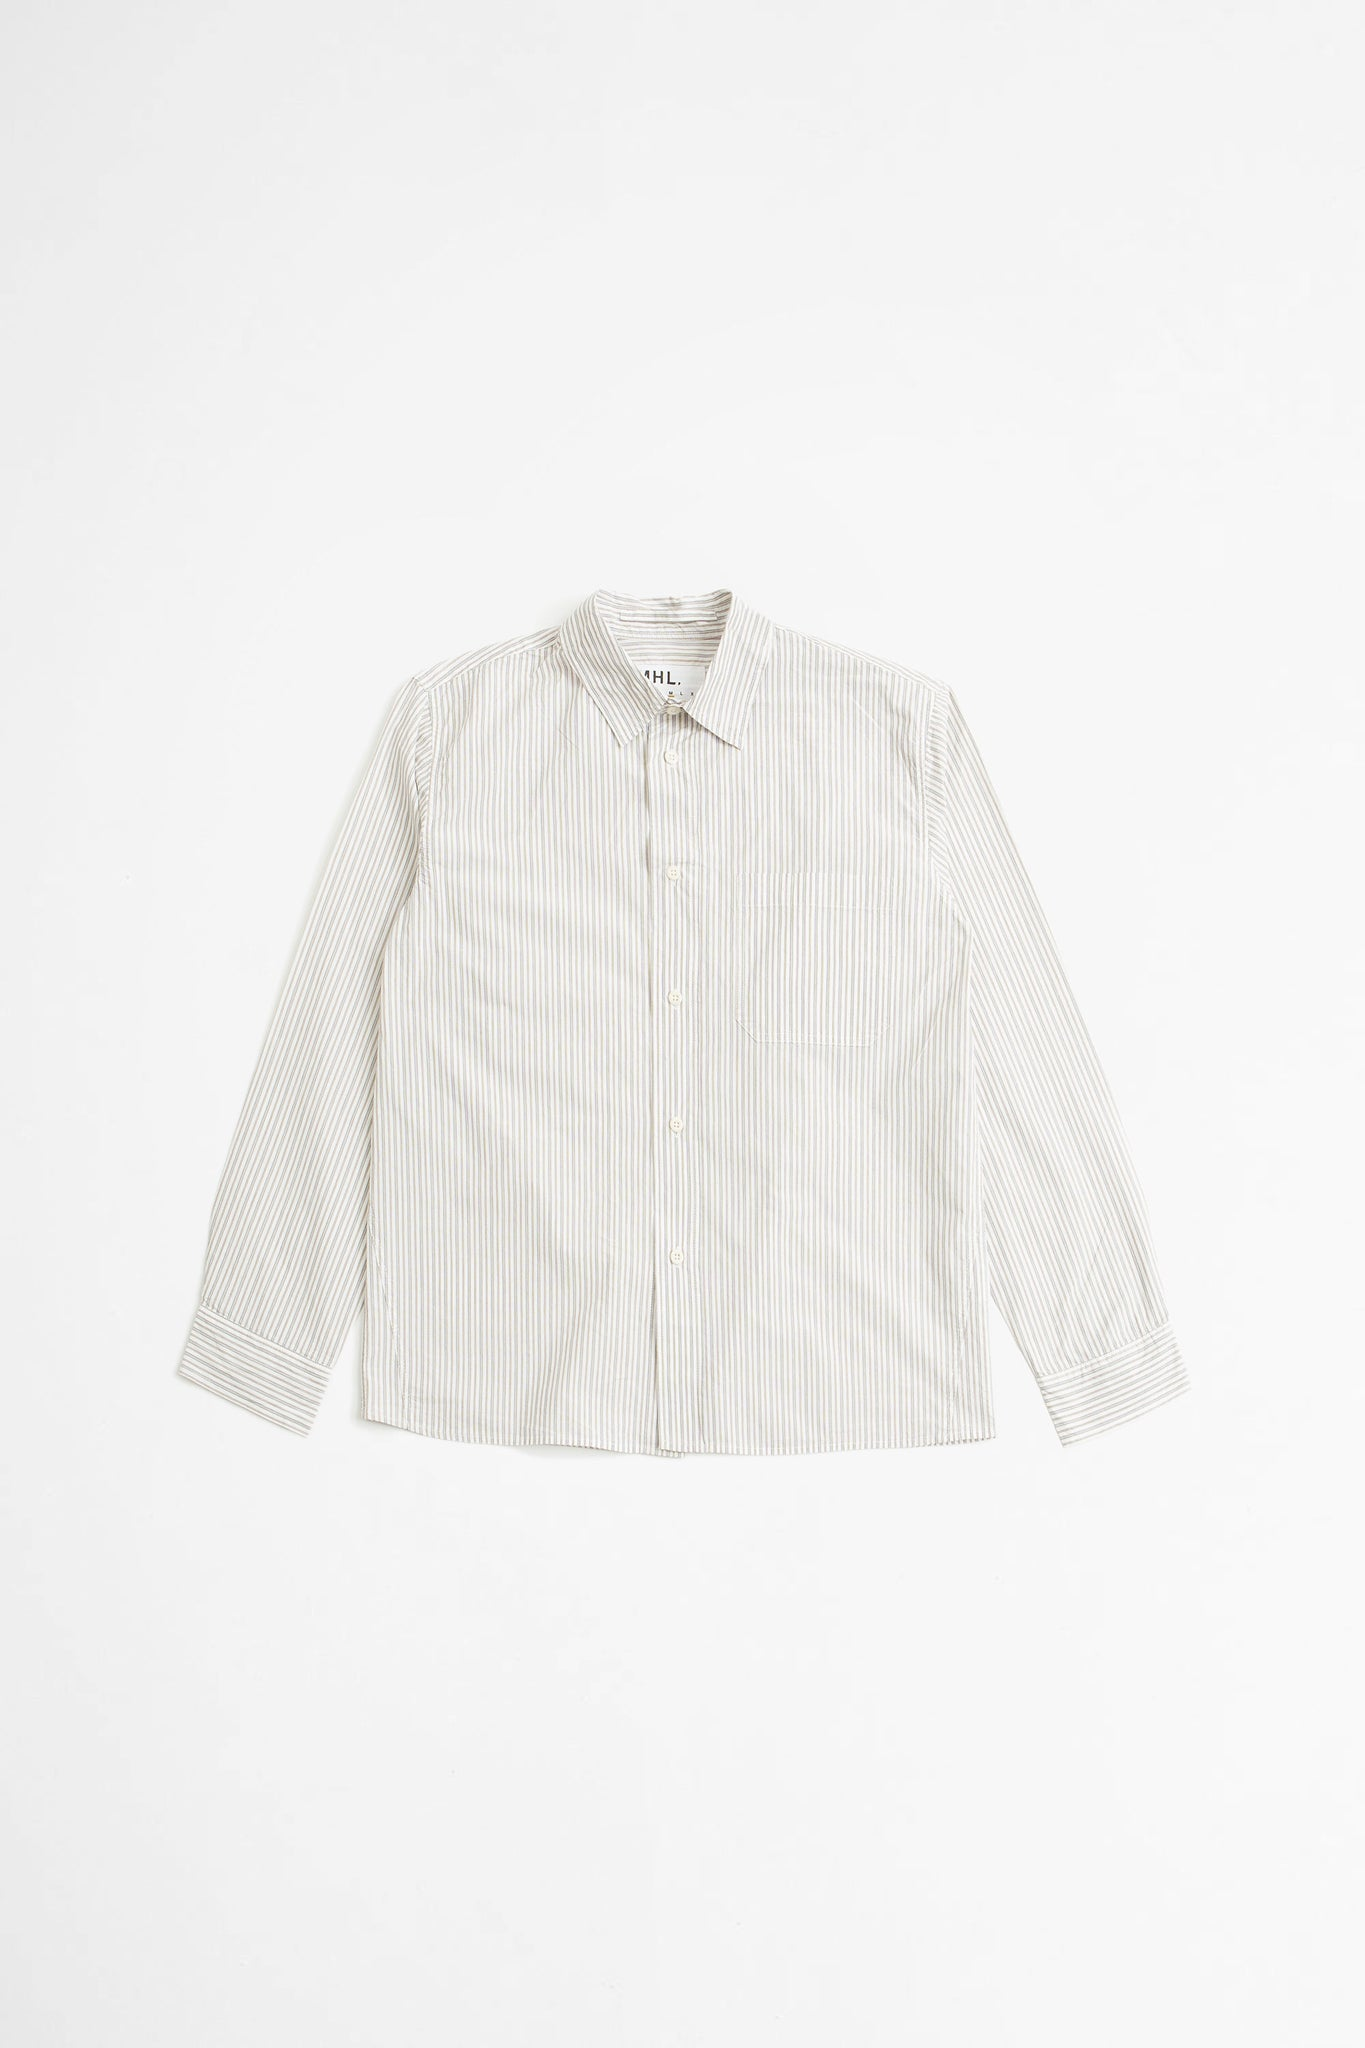 Painters shirt tram stripe ecru/brown